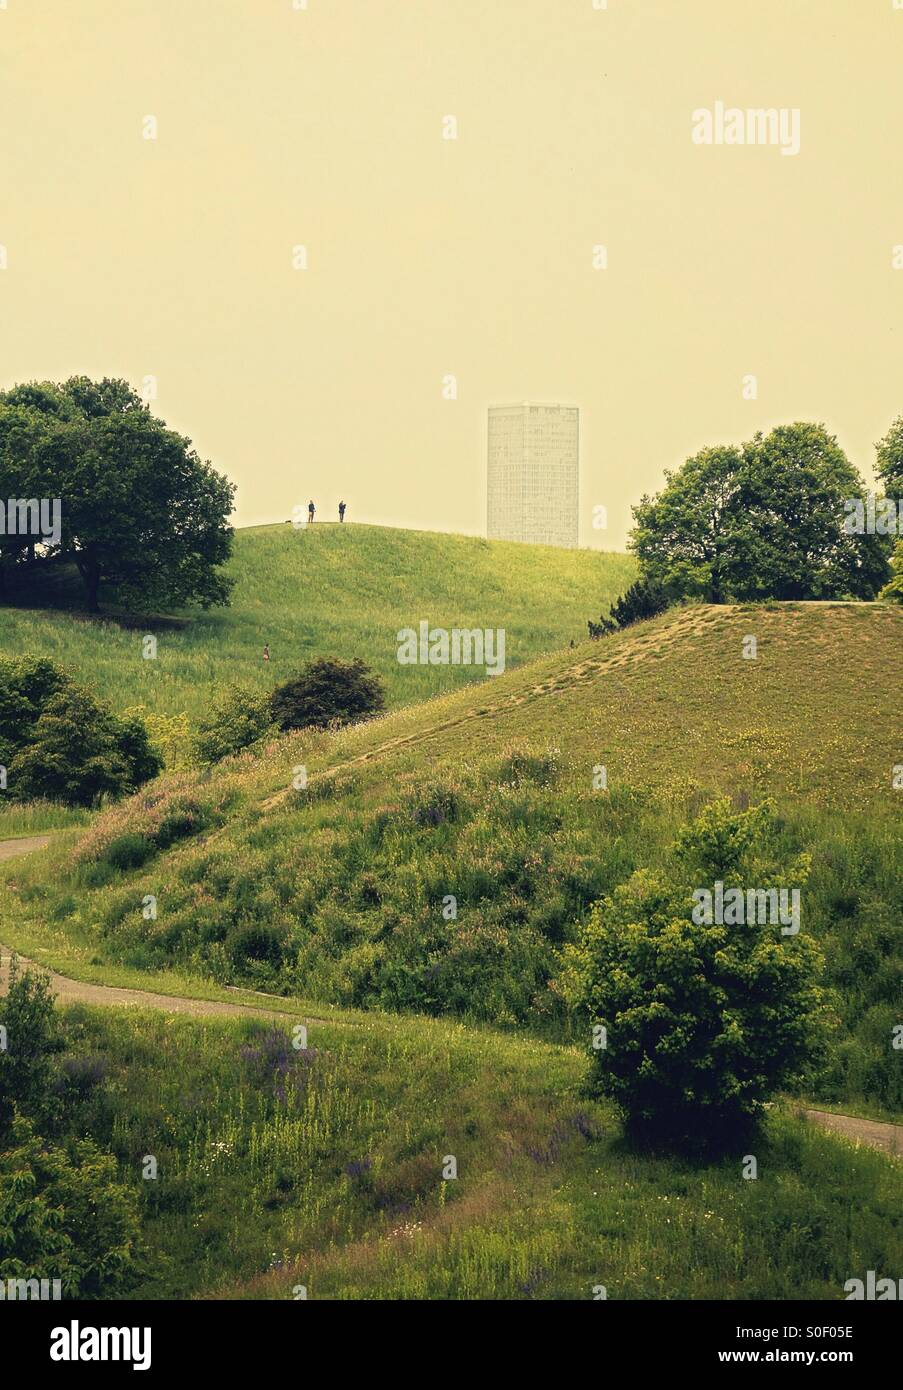 City office block above a green parkland with two silhouetted figures - Stock Image